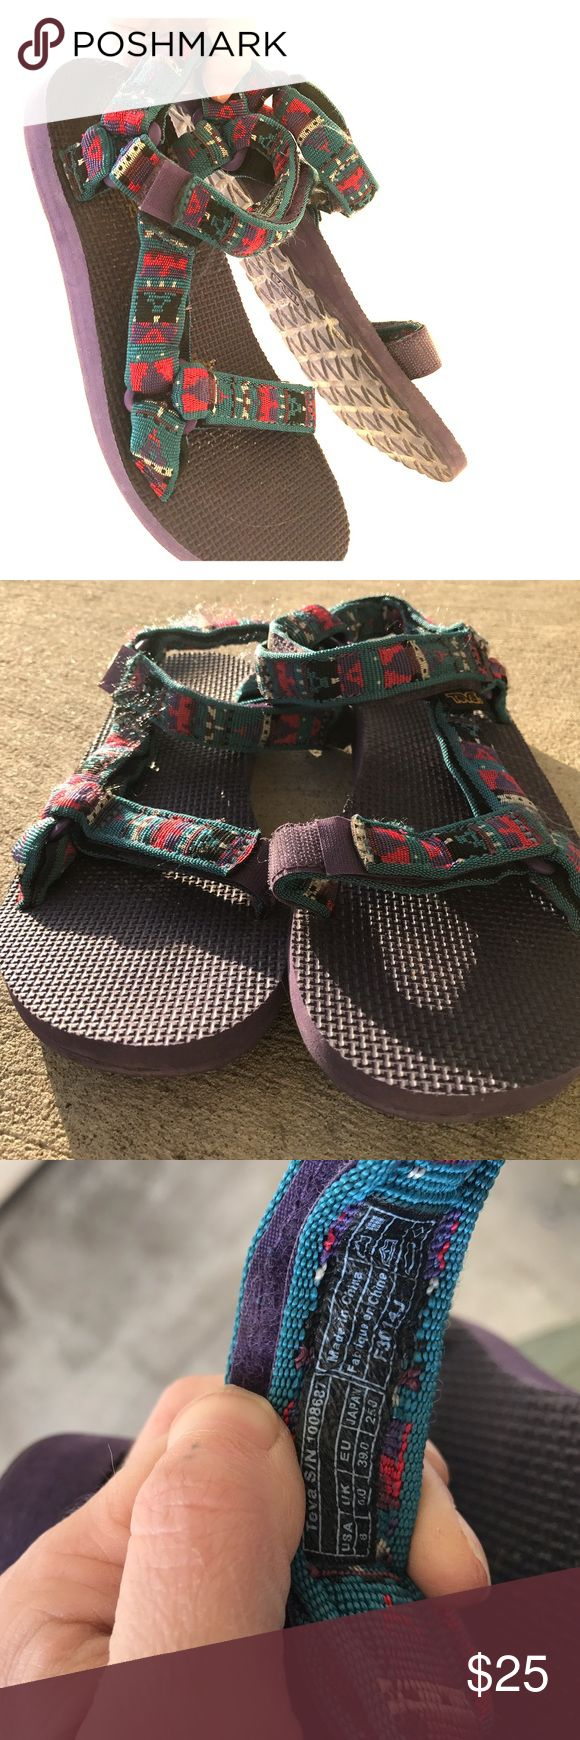 TEVA festival sandals ✌🏼 TEVA festival sandals! Size 8                                                                               ❁ I will only trade for Free People items.  ❁ All sales are final.   ❁All Free People items will come in FP bag.  ❁ Let me know if you have any questions! I'll do my best to be as helpful as possible. Teva Shoes Sandals